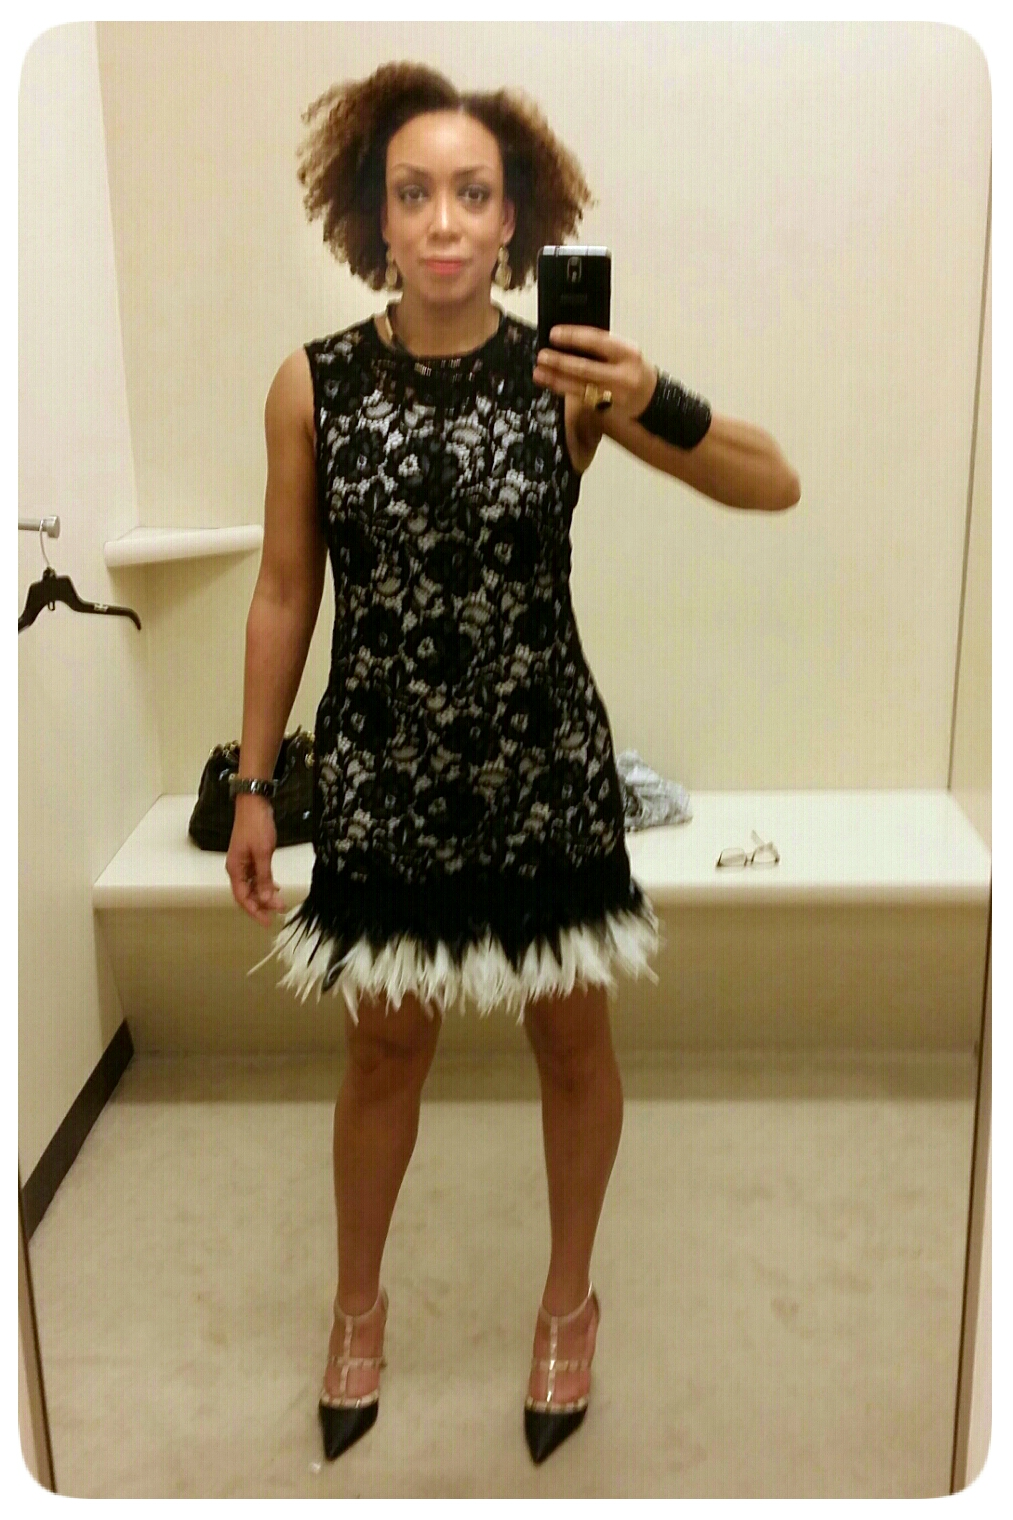 DKNY Feather Hem Lace Dress - Erica B's DIY Style!